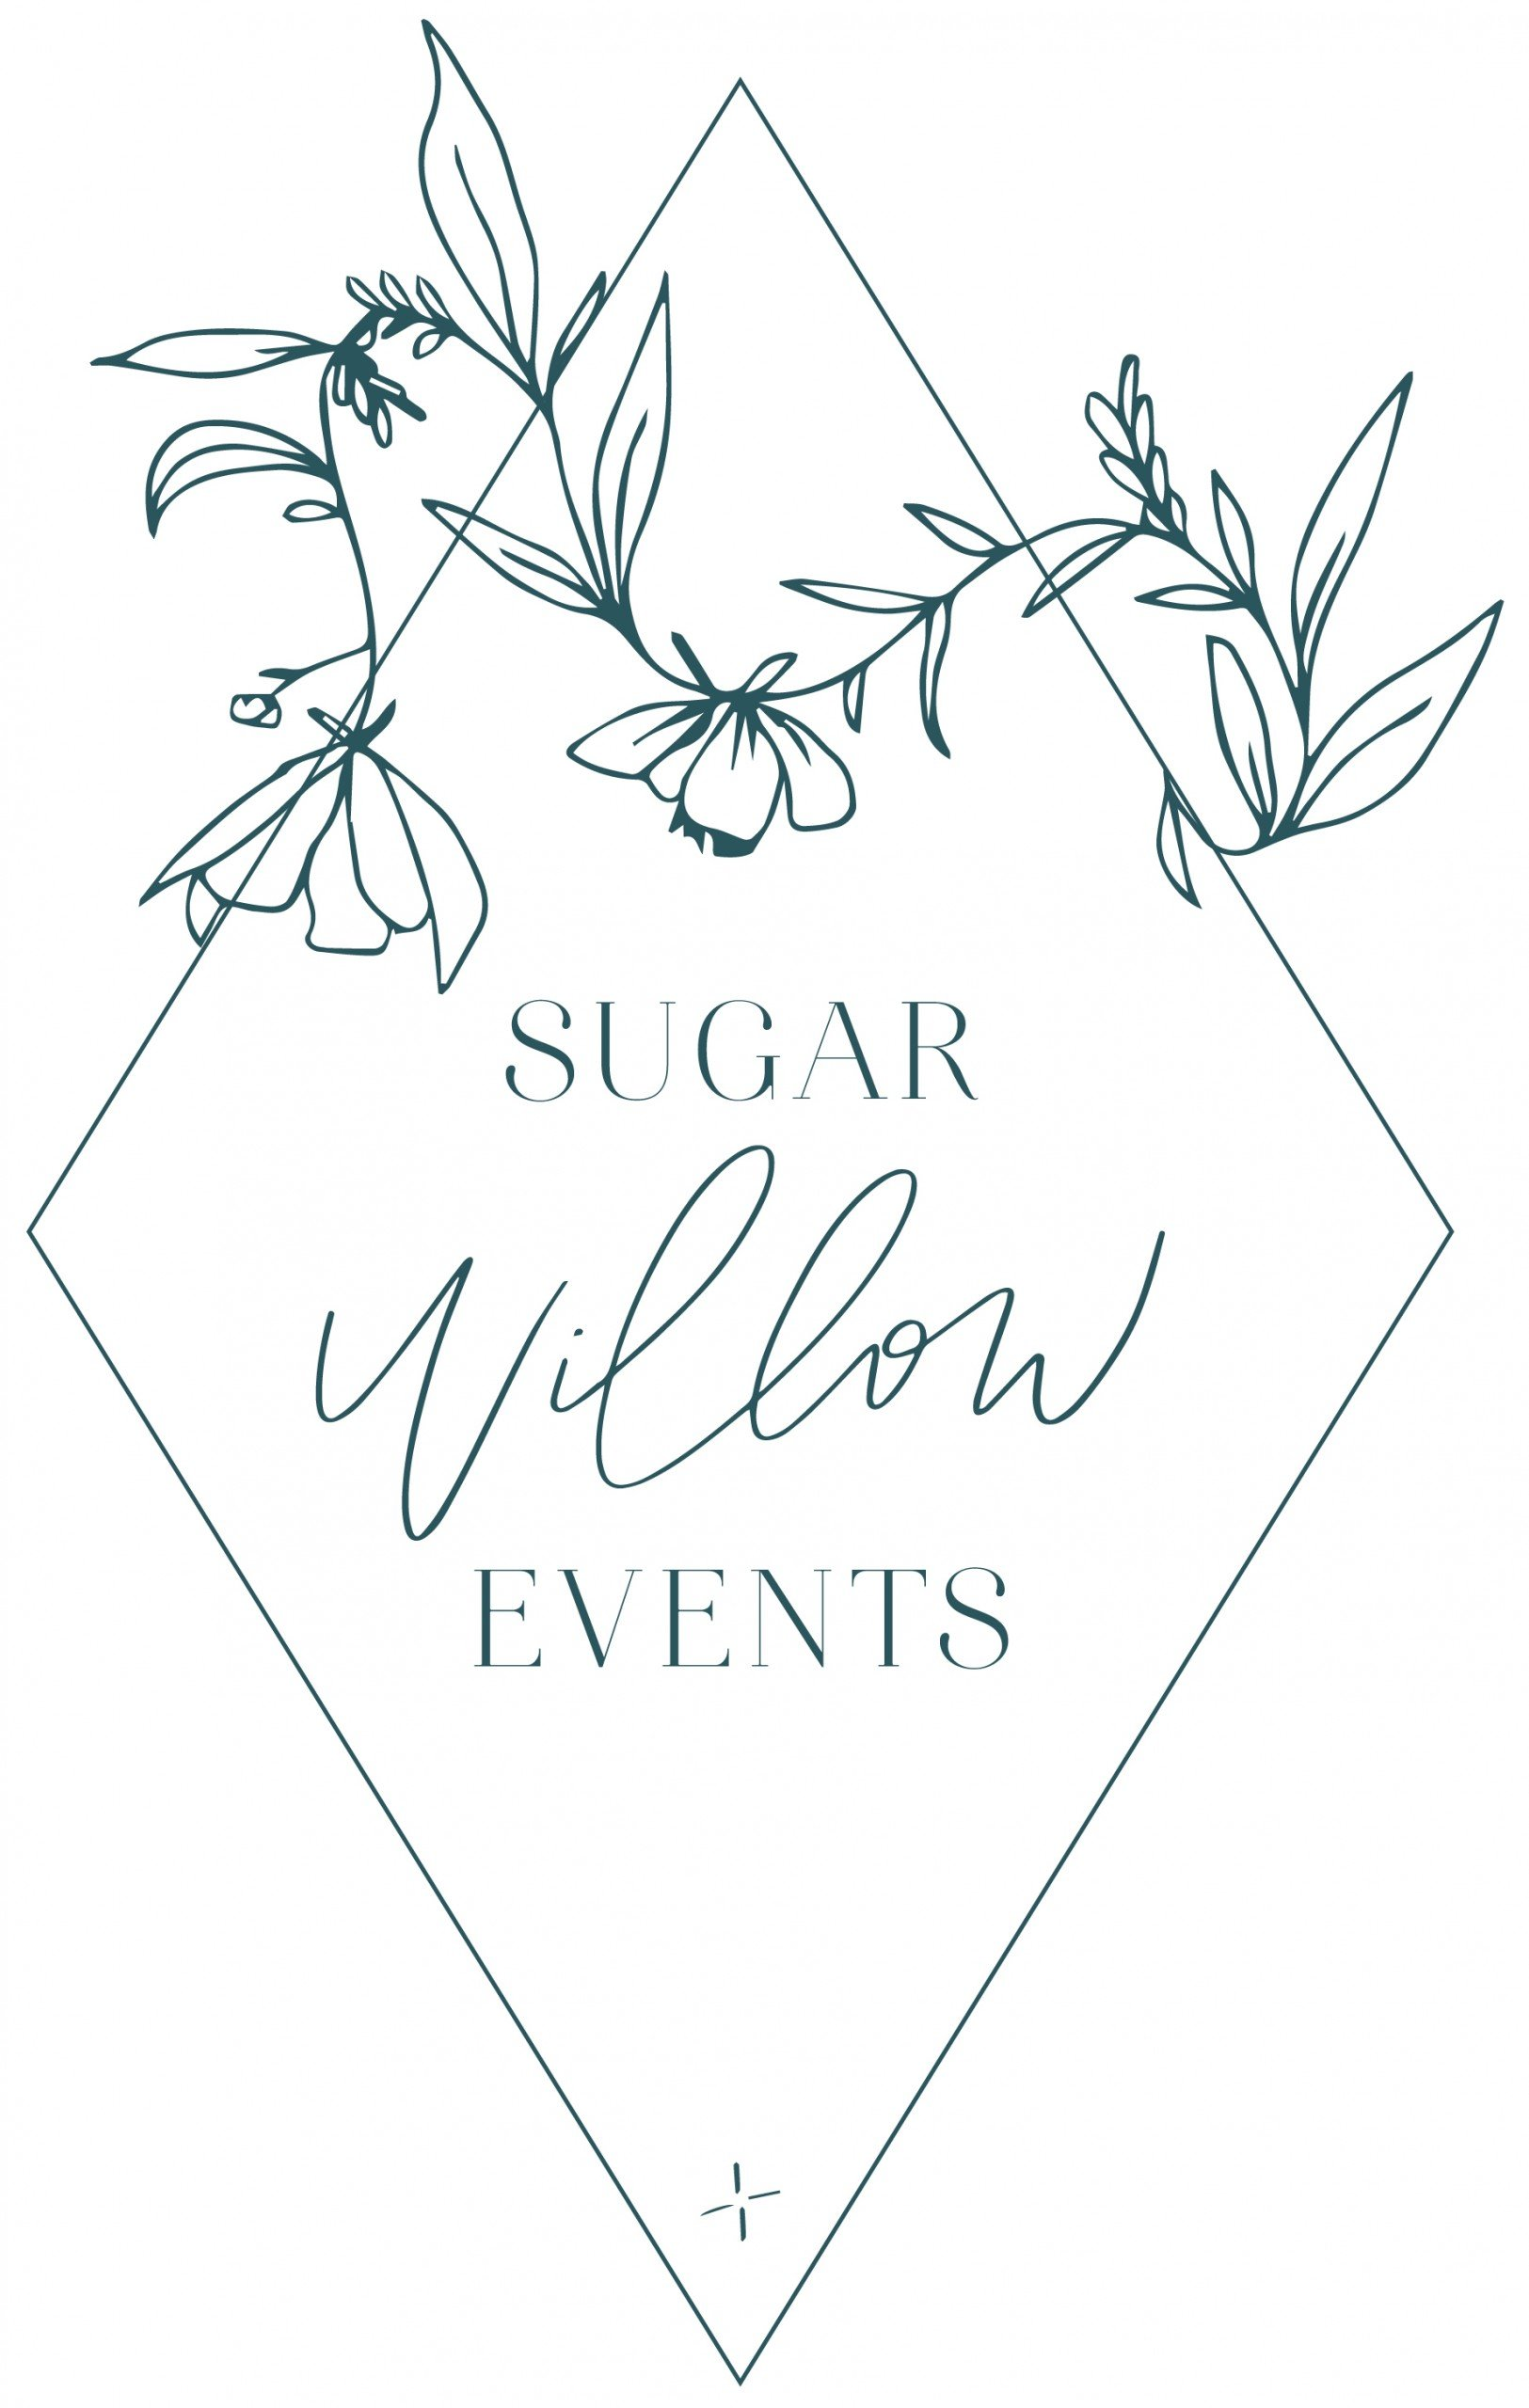 Sugar Willow Events